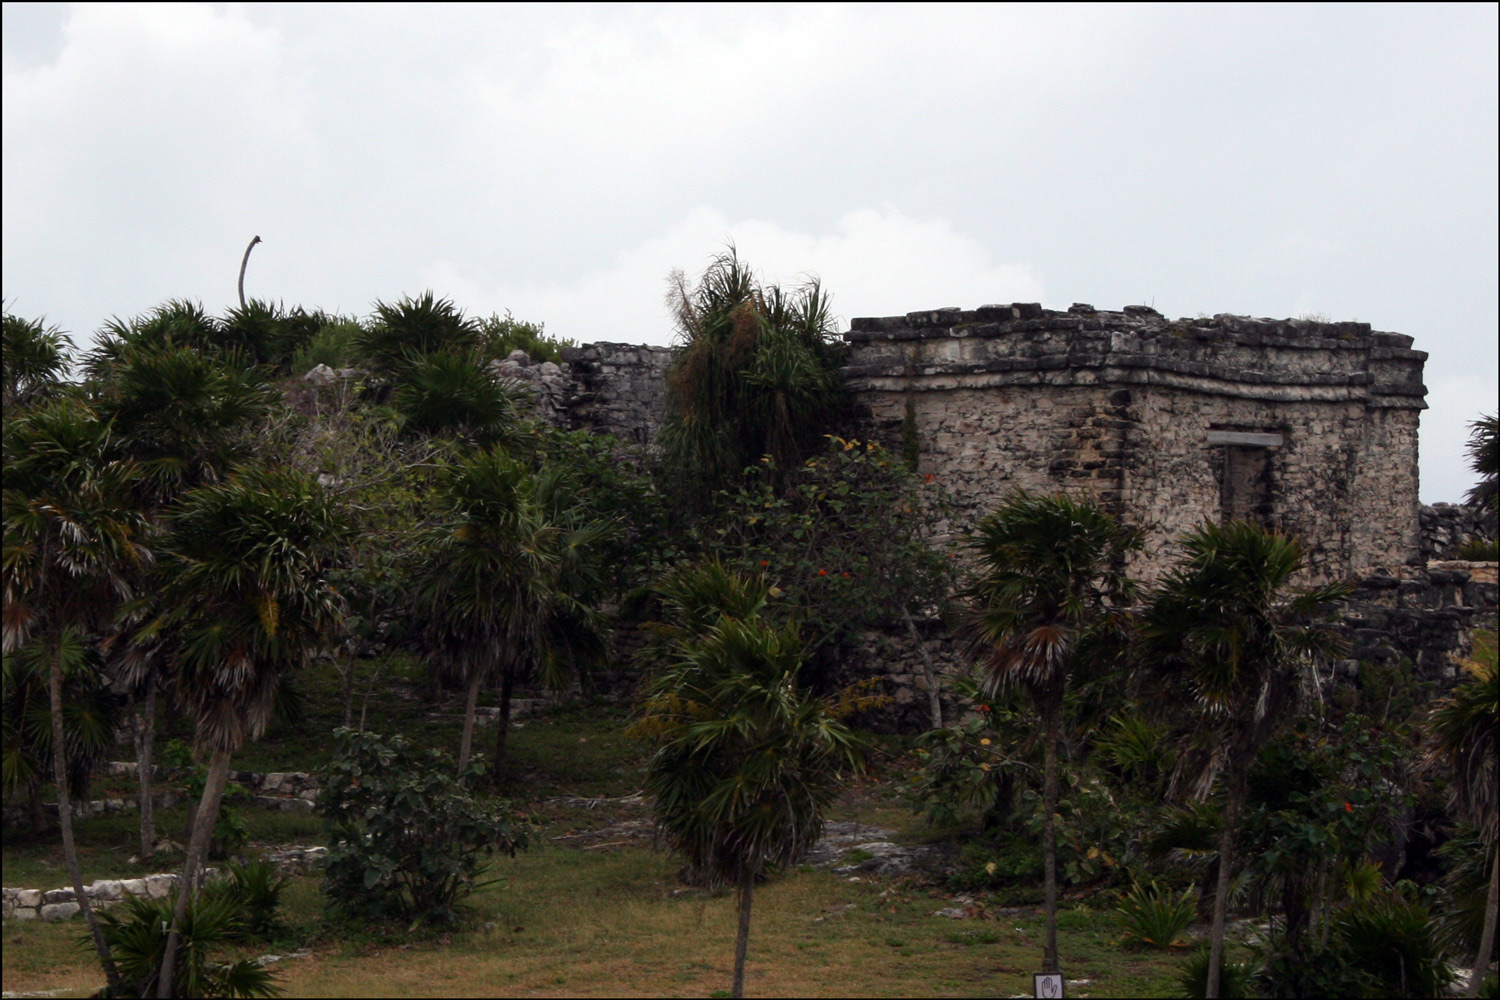 The House of the Cenote